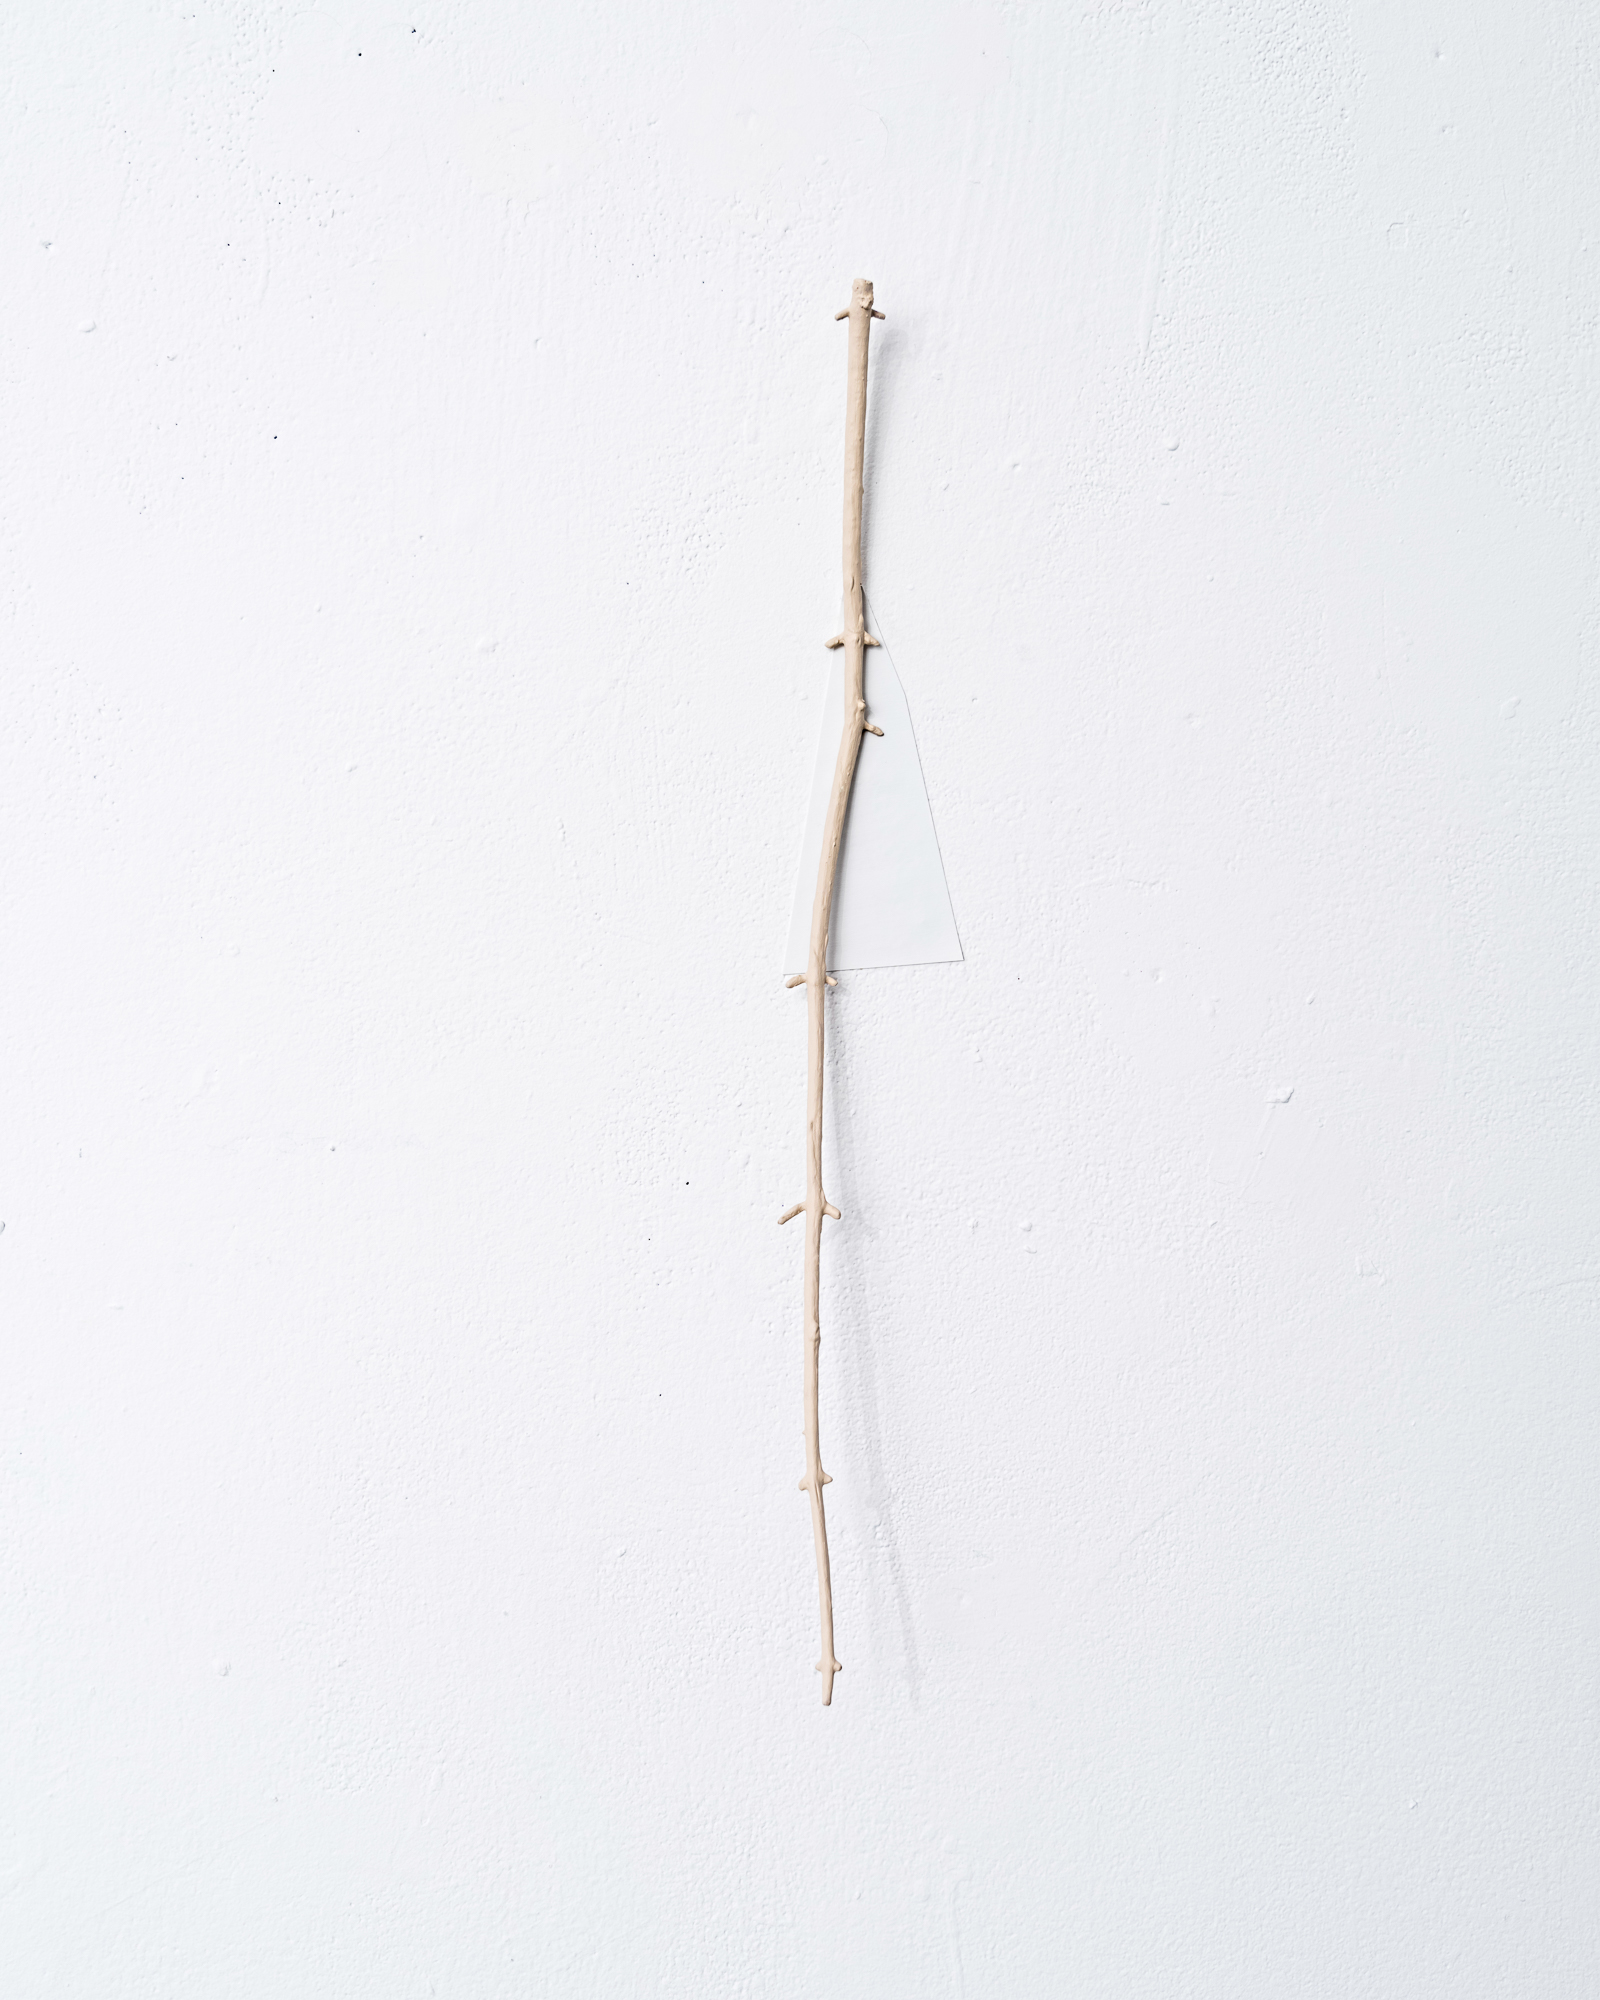 Limb Drop,  dimensions vary, acrylic paint on found twigs, acrylic paint on paper, 2016. Detail   The State of a Small Sky , Zavitiz Gallery, 2016  Documentation by Peter Denton